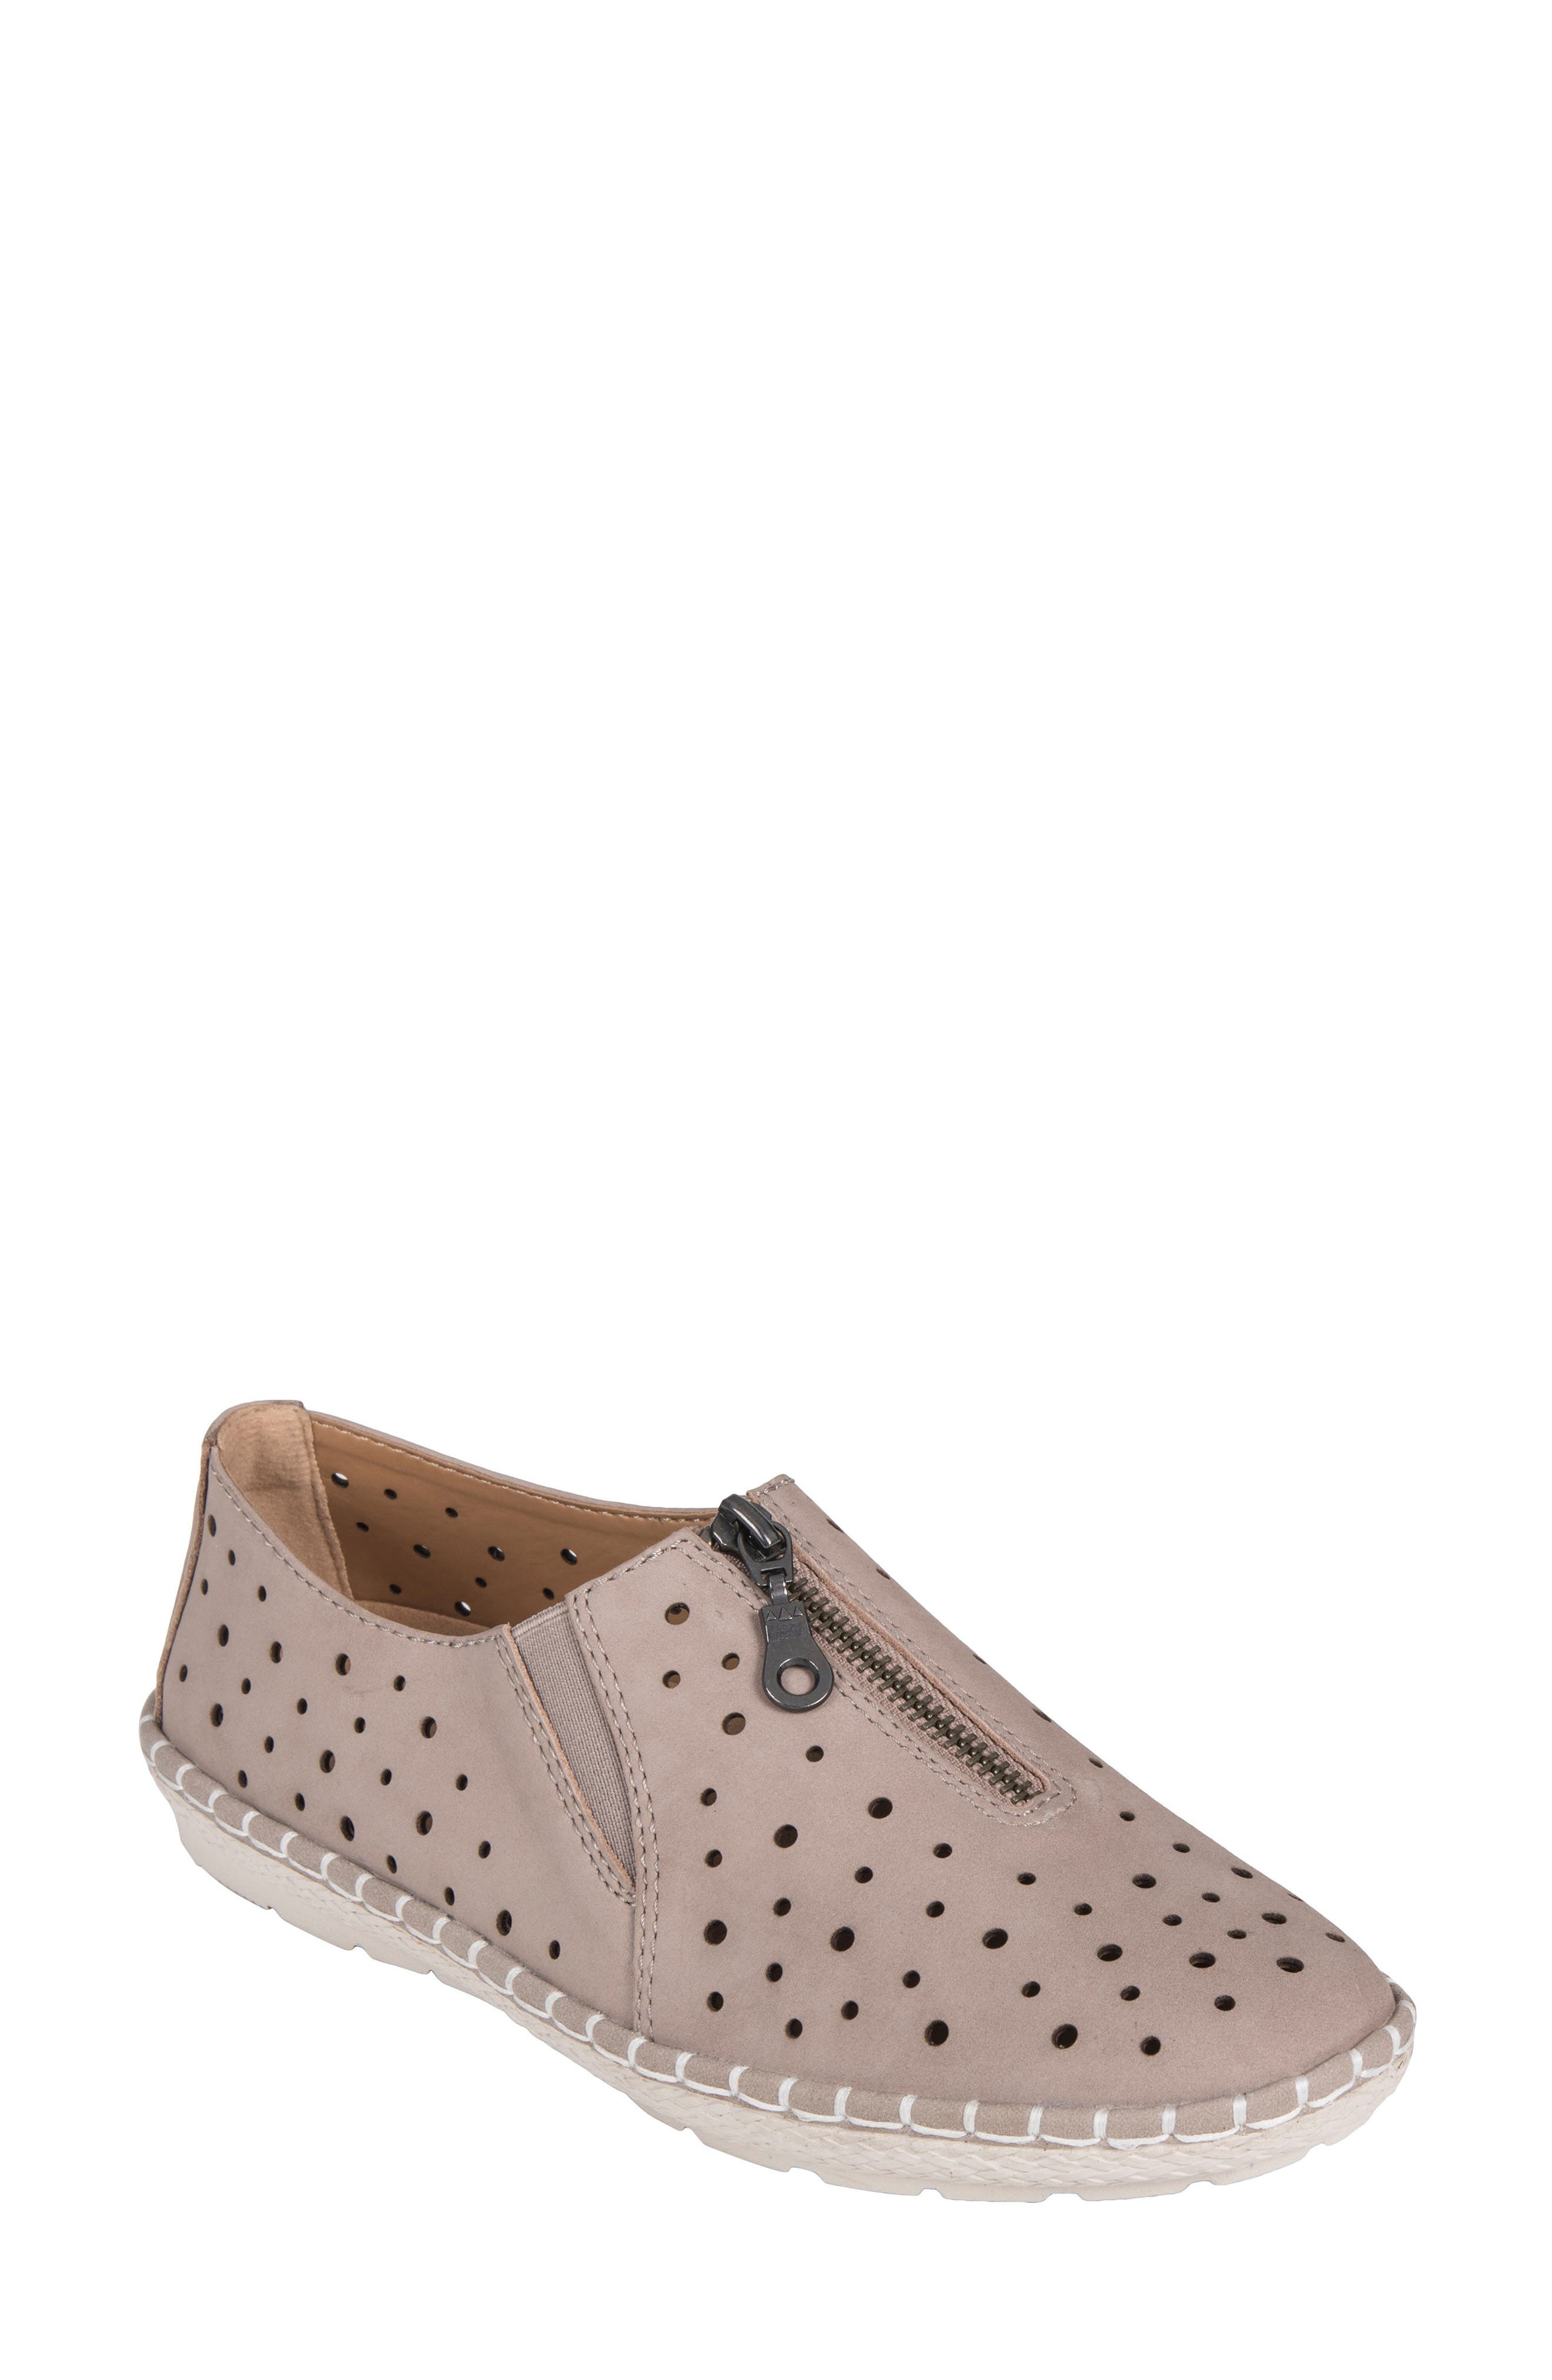 Callisto Perforated Zip Moccasin,                             Main thumbnail 1, color,                             TAUPE NUBUCK